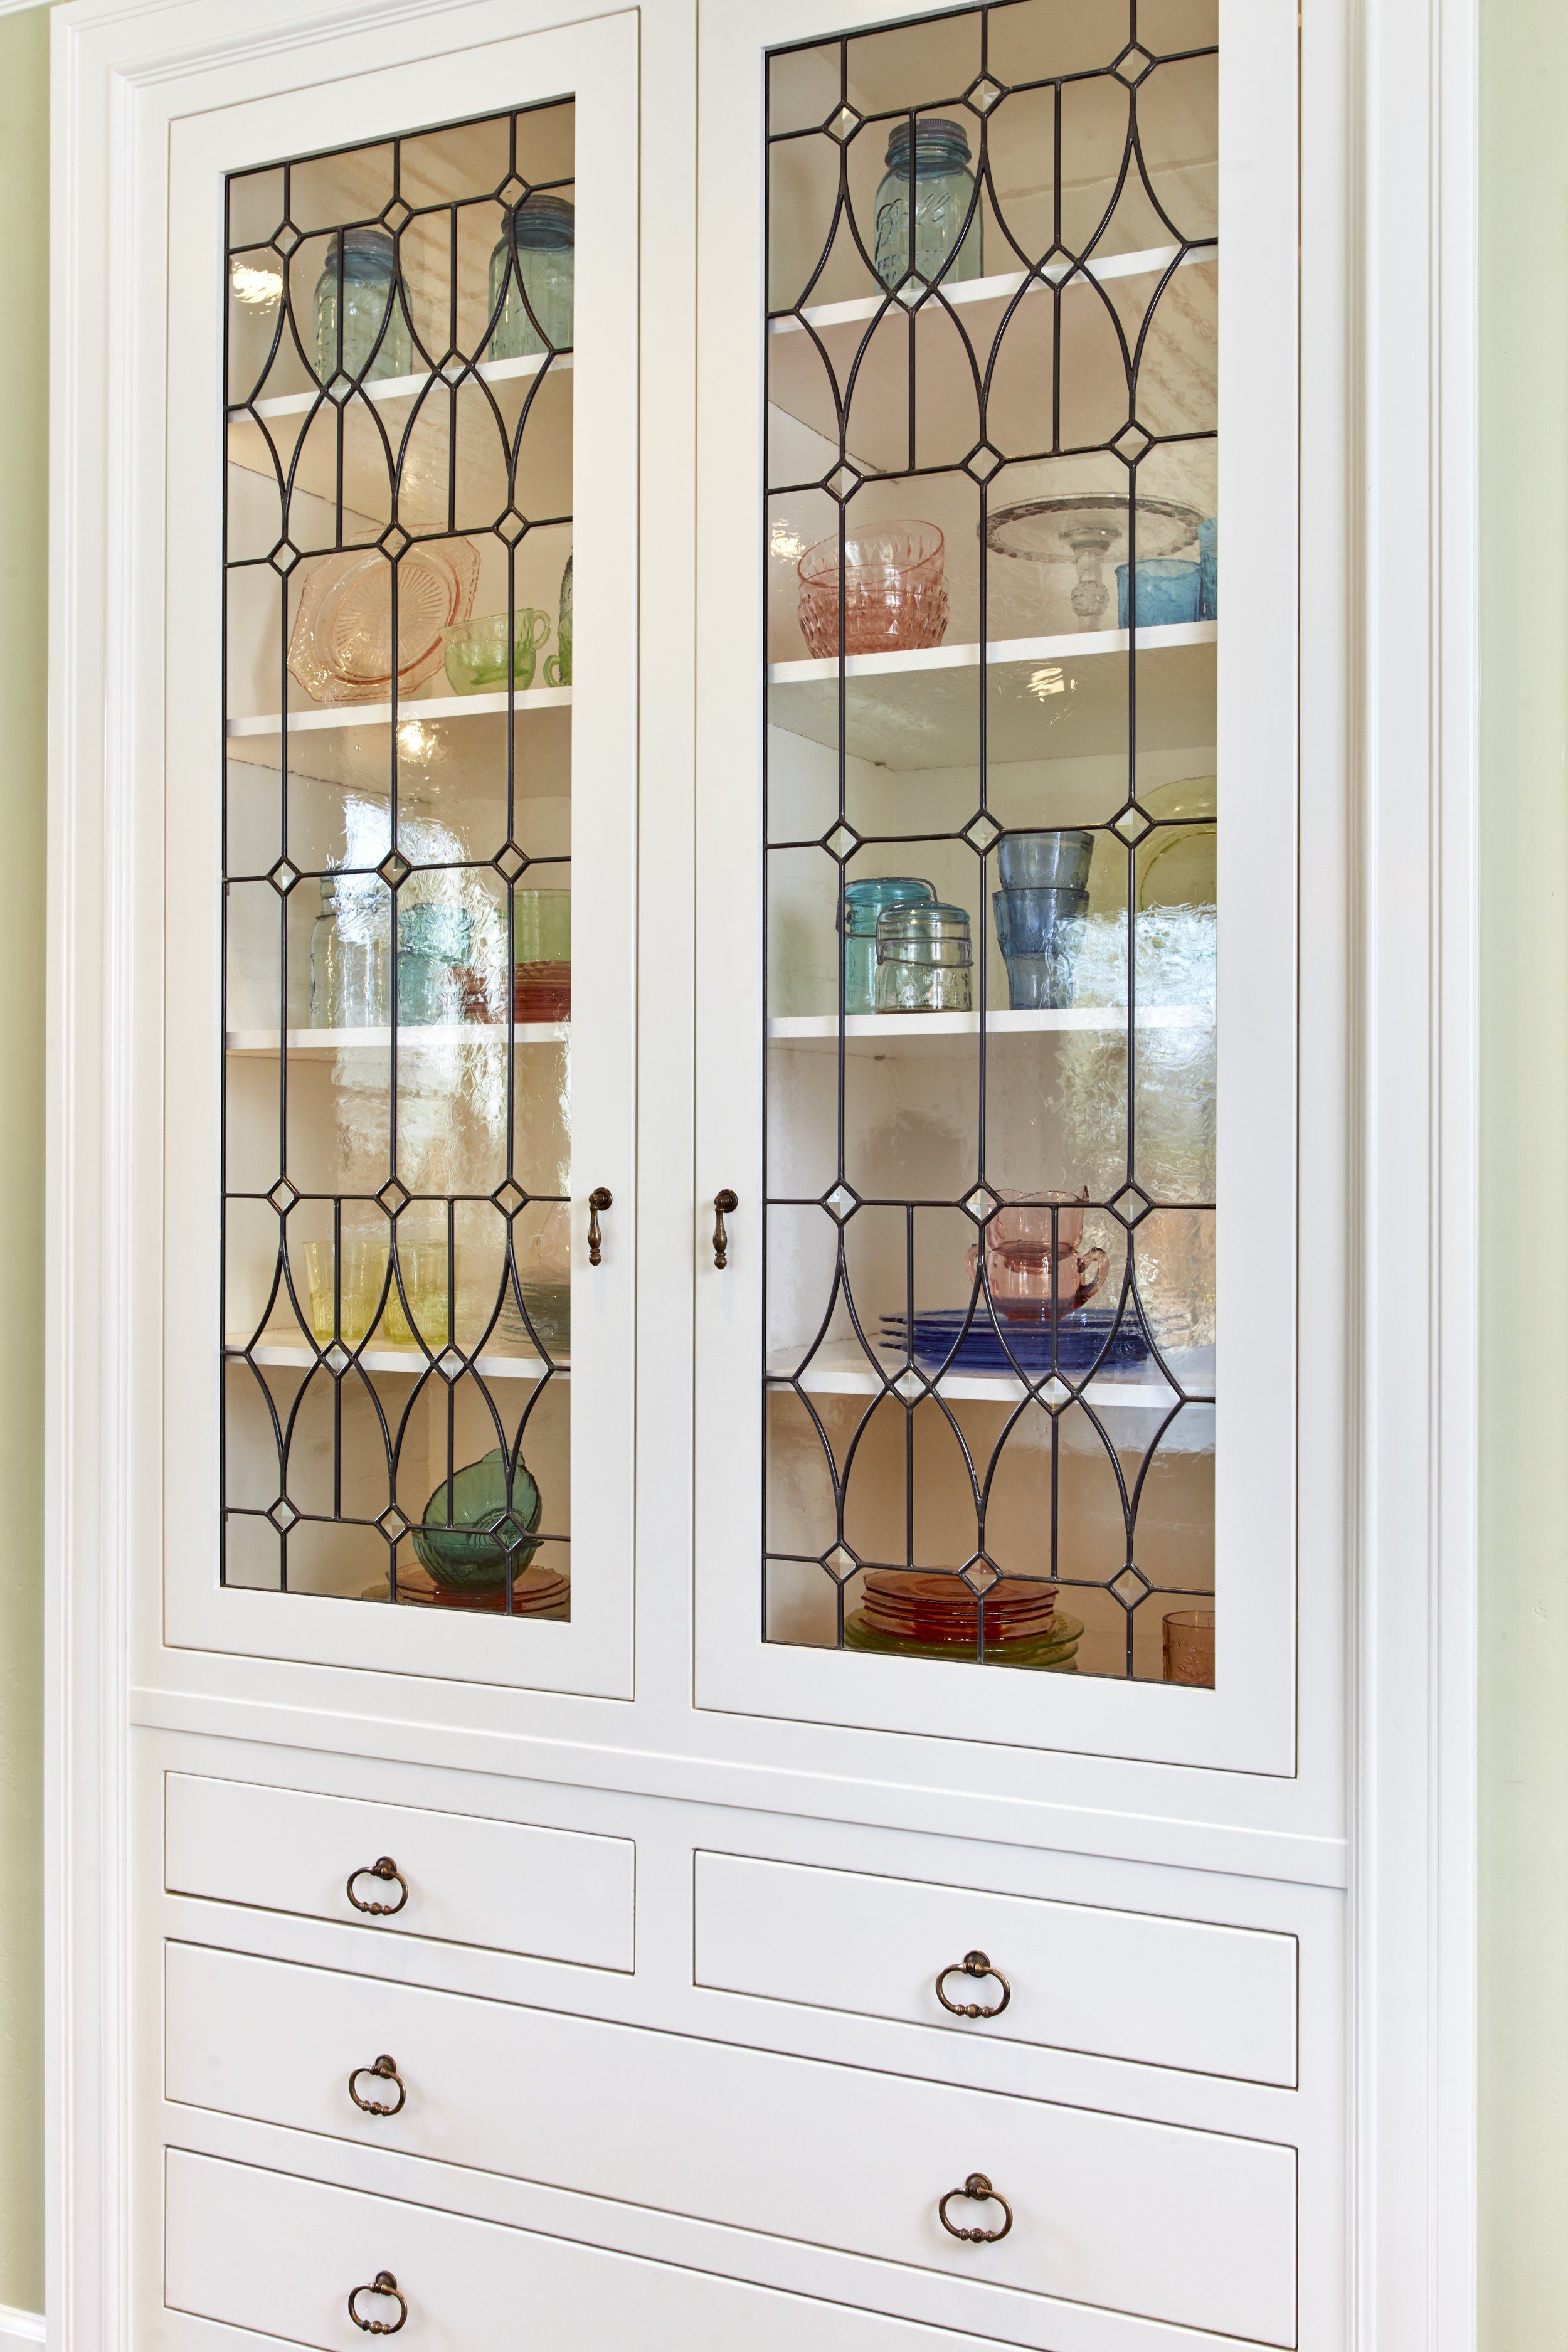 custom stained glass leaded glass traditional curved diamond design dainty elegant legacy glass studios menlo park bay area california custom design installed cabinet glass.jpg